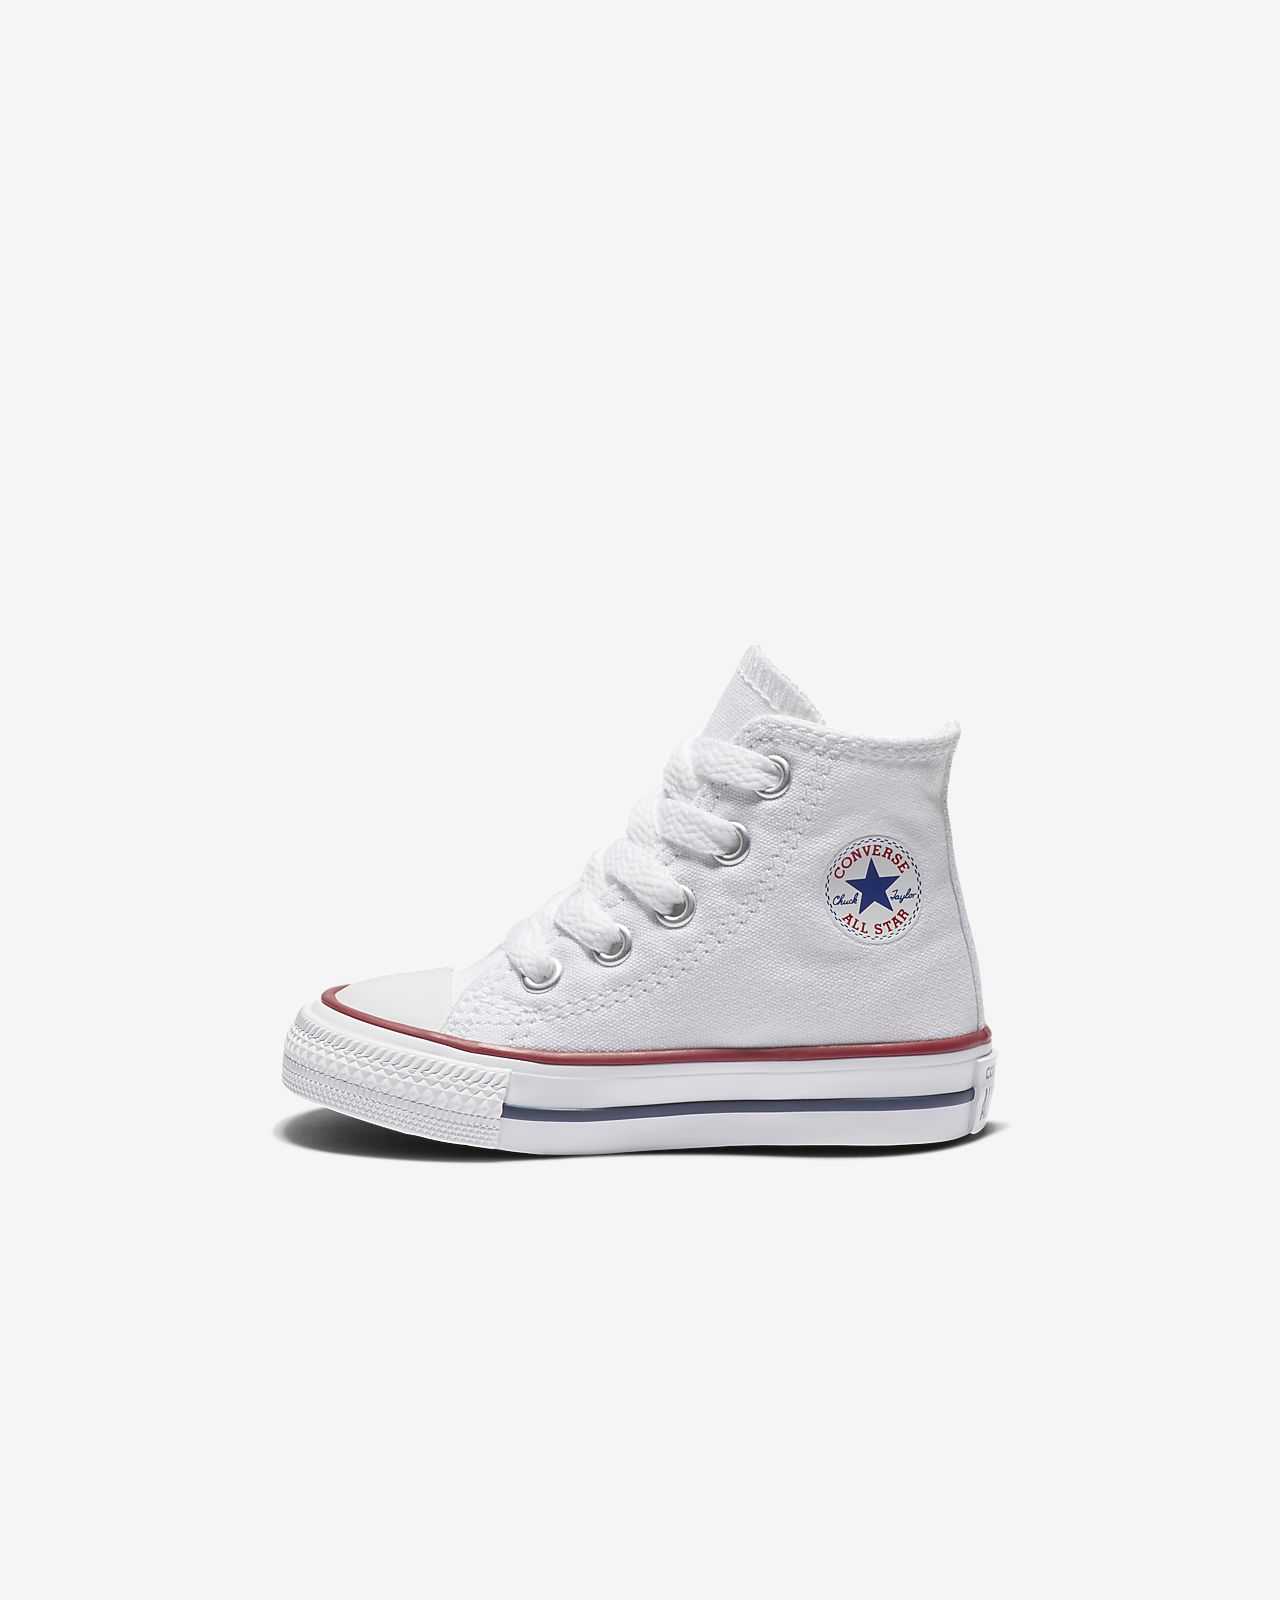 03faad27af19 Converse Chuck Taylor All Star High Top (2c-10c) Infant Toddler Shoe ...